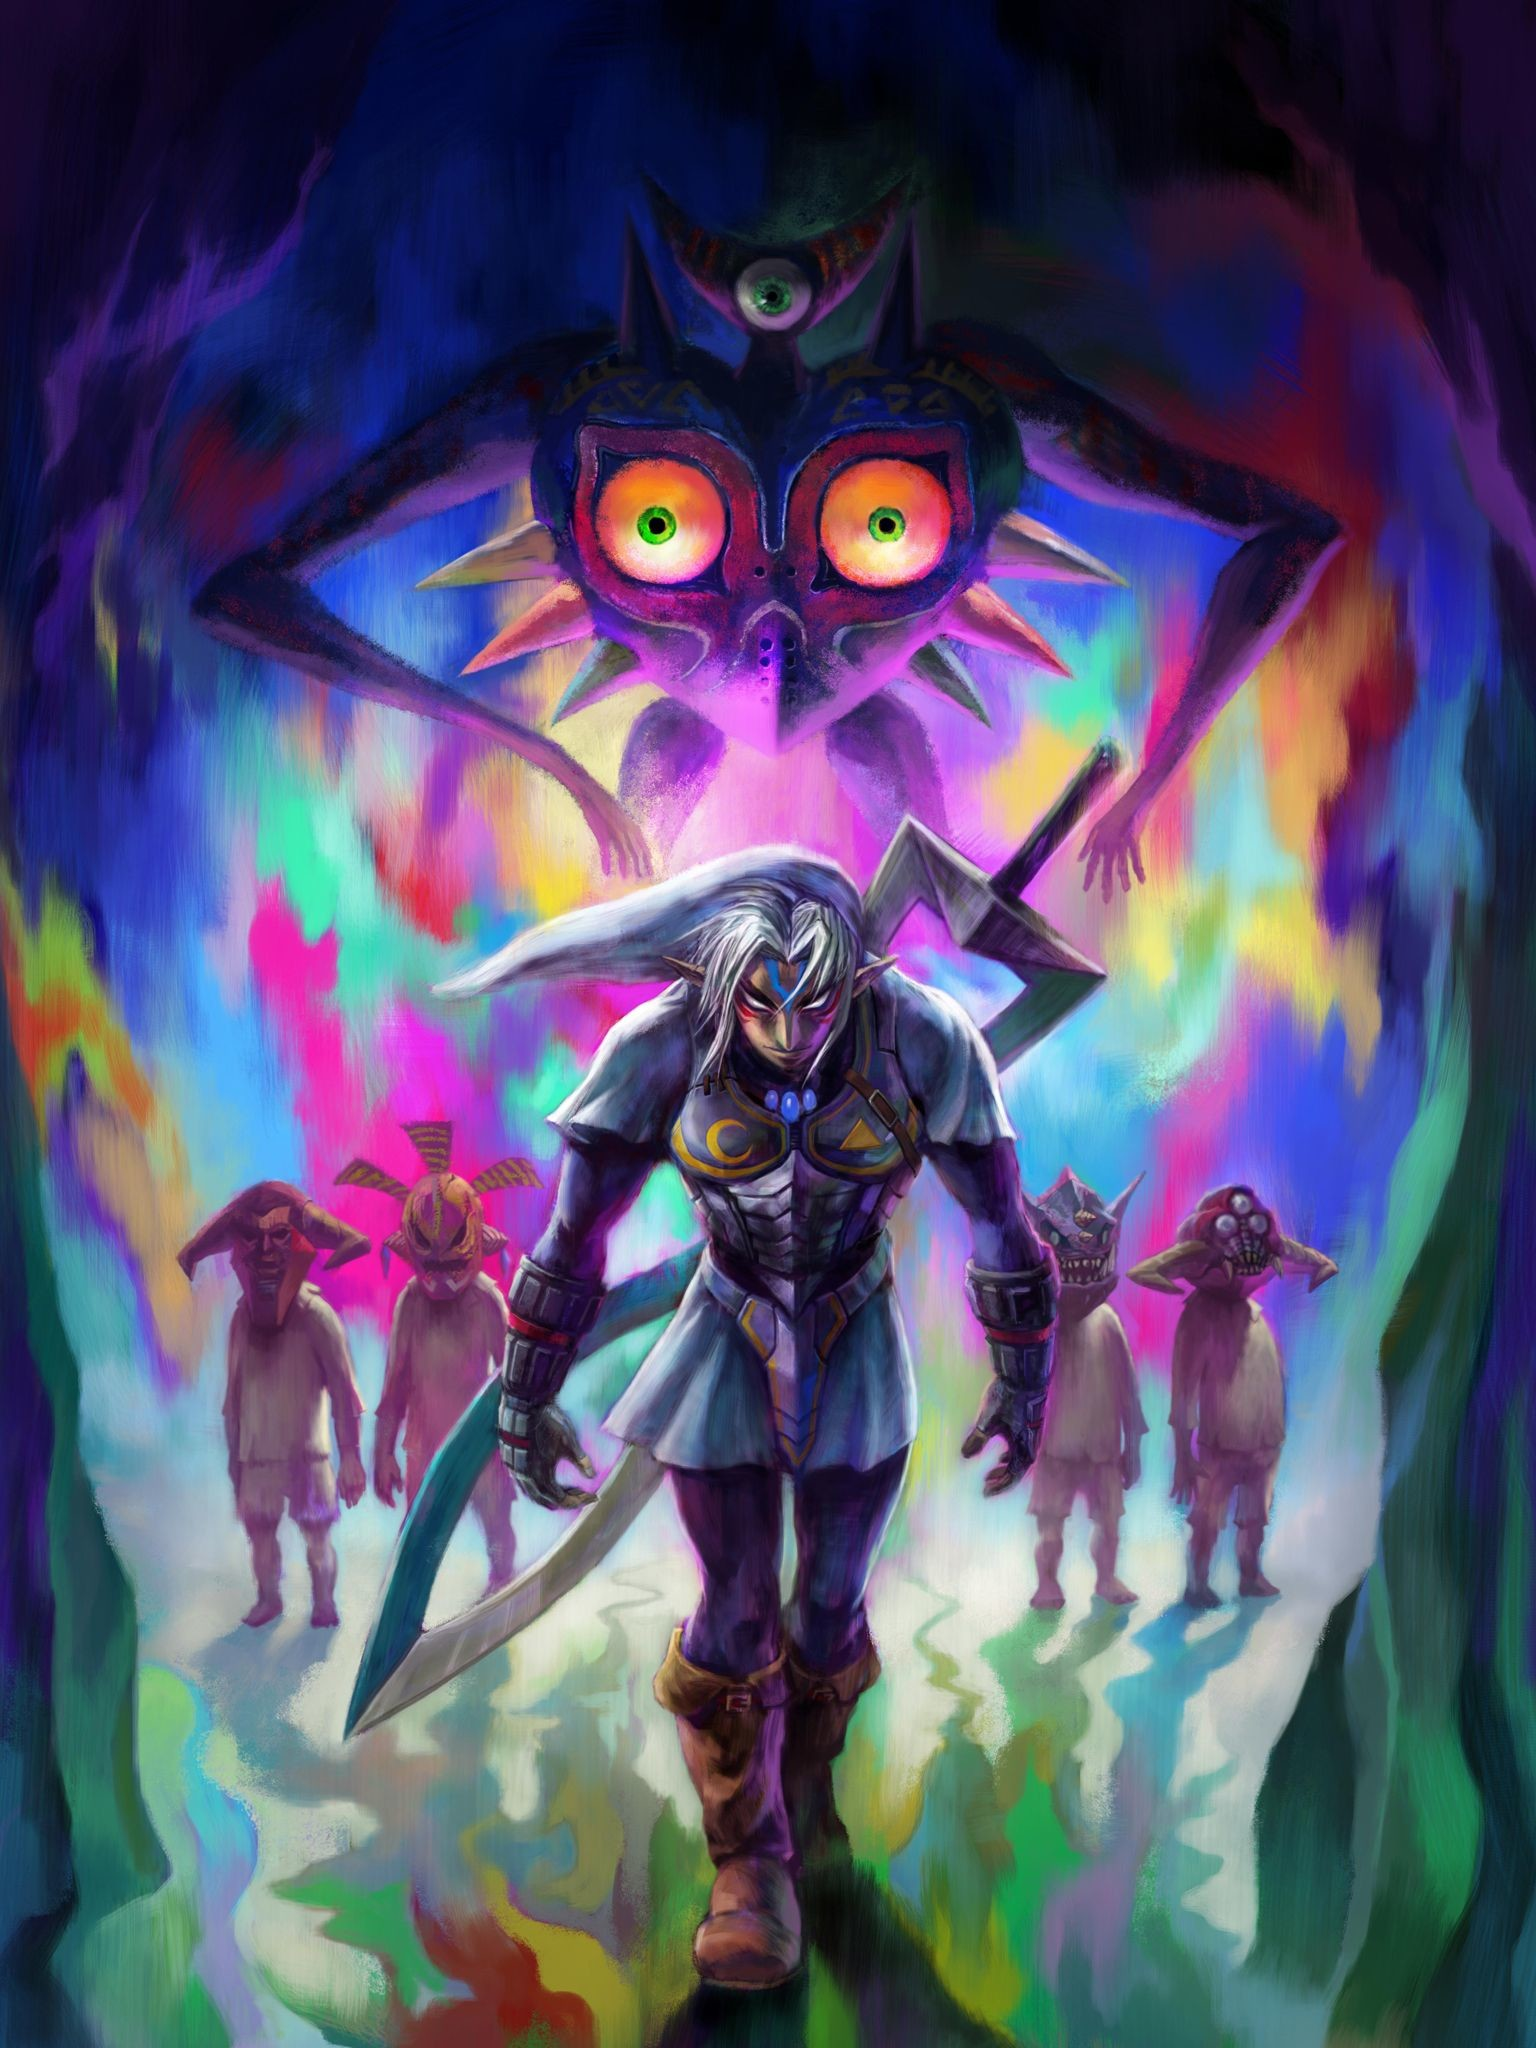 Majoras Mask wallpapers - HD wallpaper Collections ...